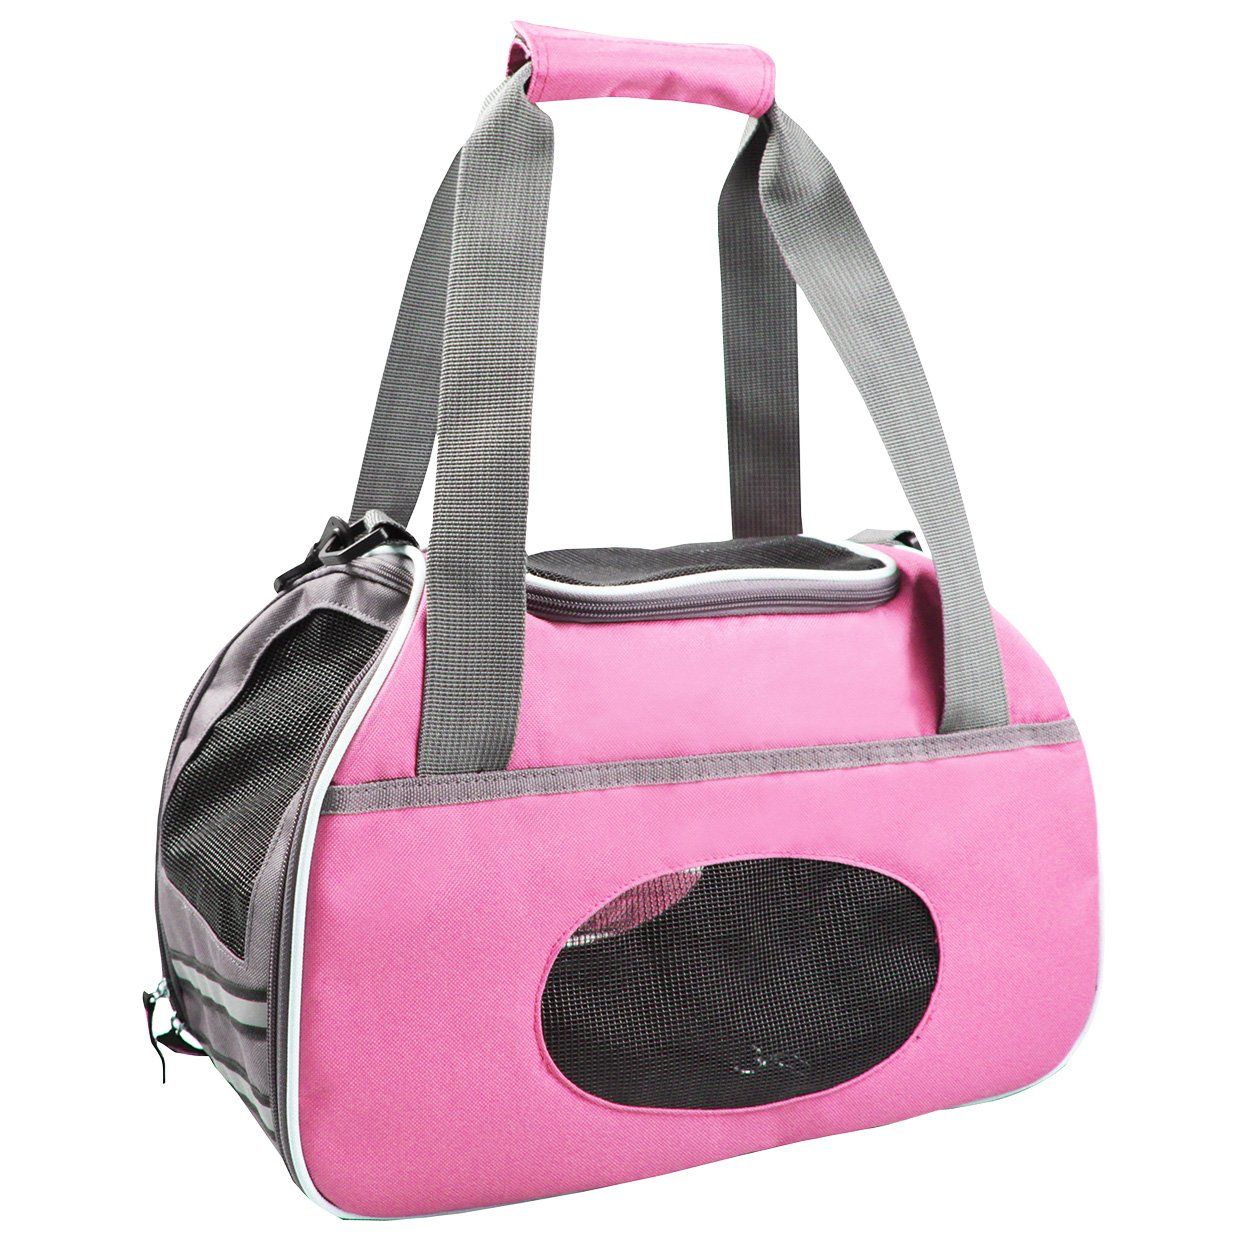 Animal Treasures 31119 Sport Pet Carrier, Pink by Animal Treasures (Image #1)